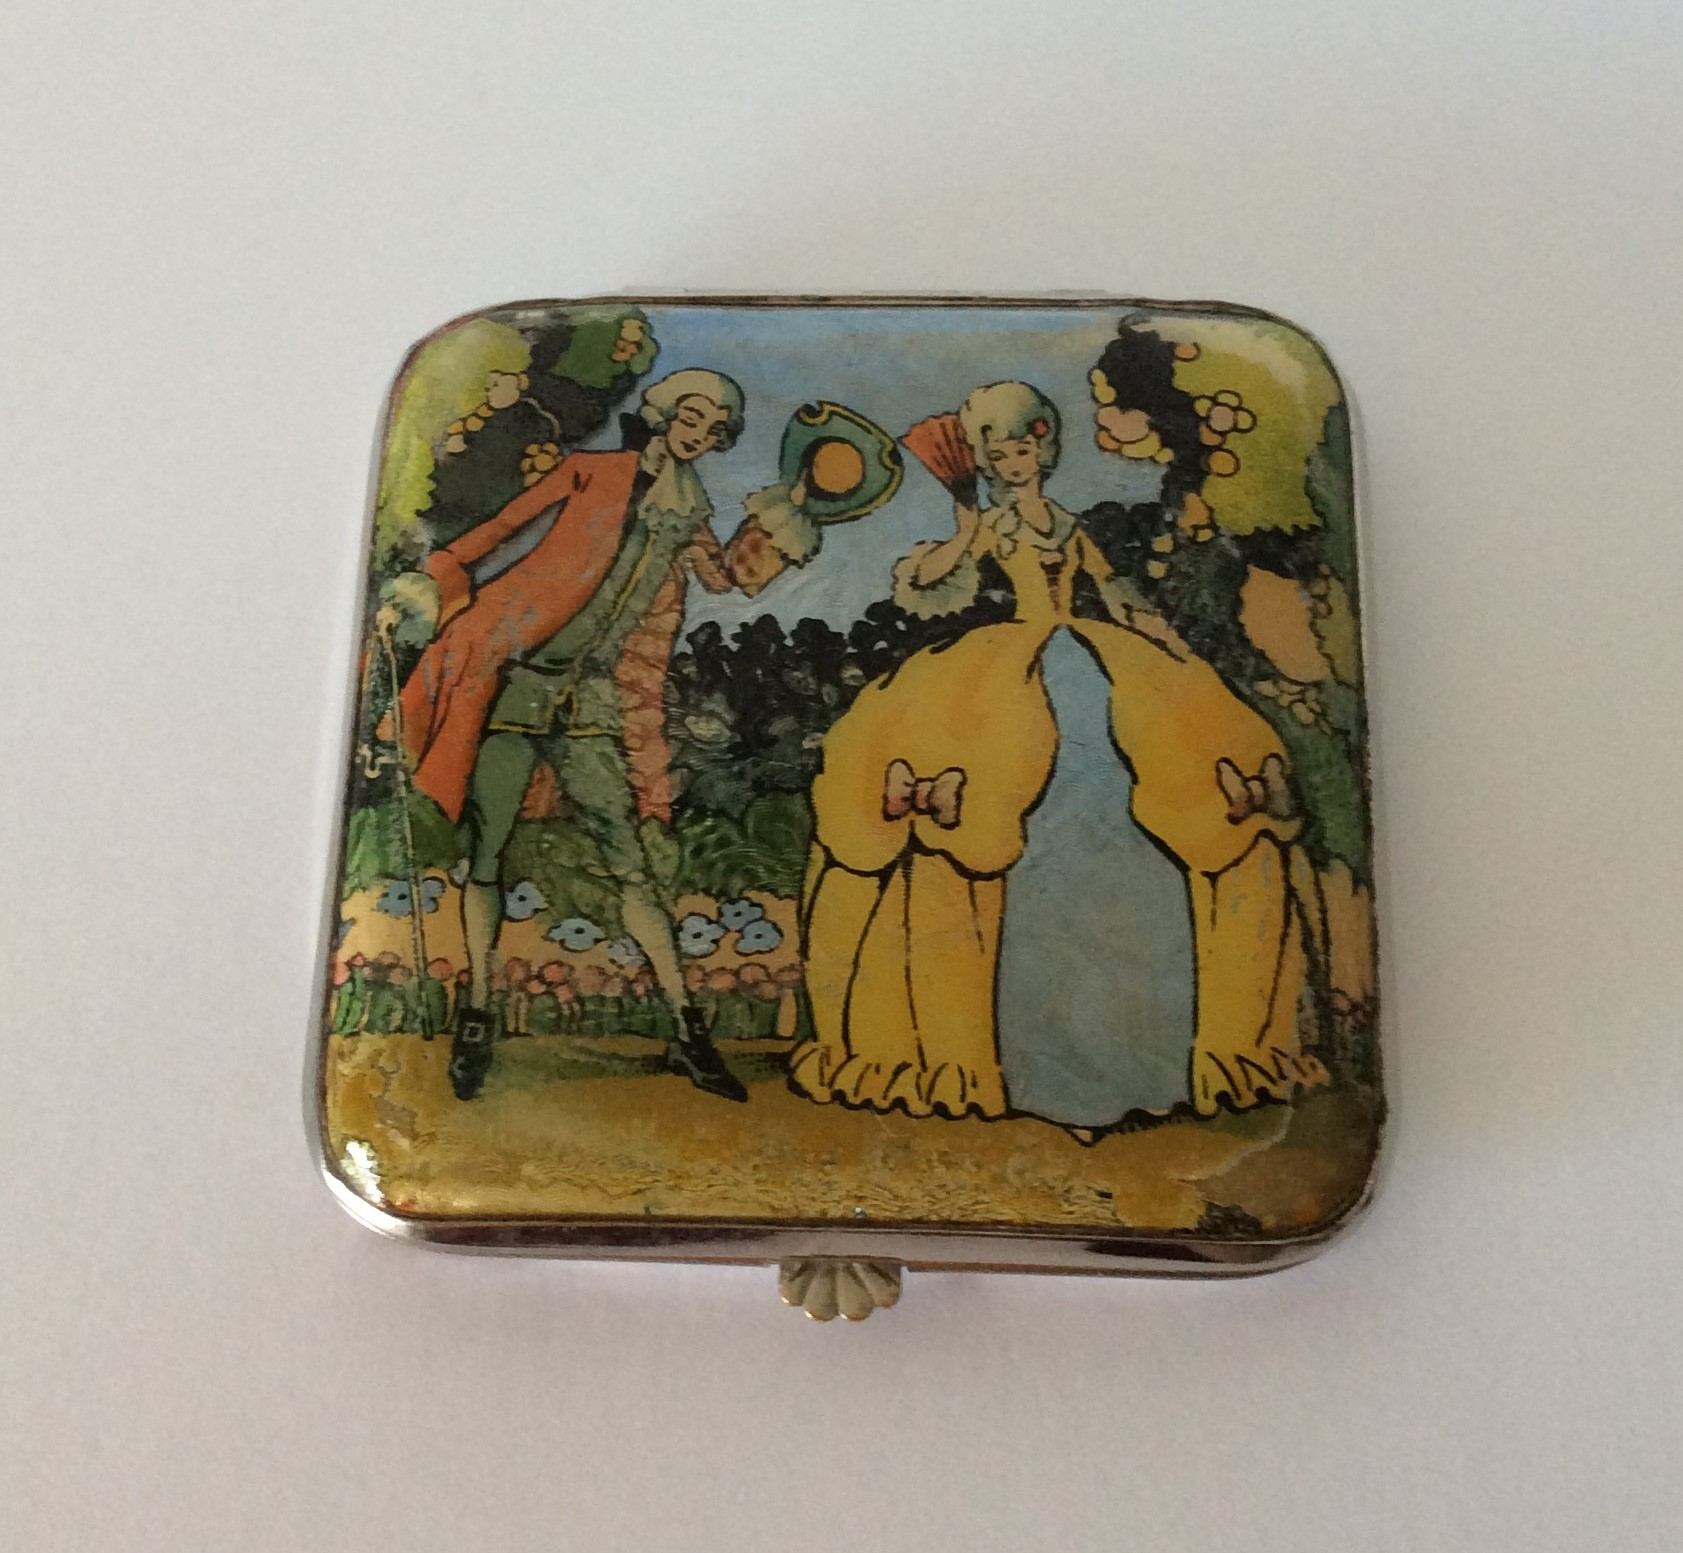 Charming Vintage Gwenda polished metal Loose Powder Compact detailed with Foil and Reverse Hand Painted Scene on Celluloid lid.                              Size 6cm x 5.8cm